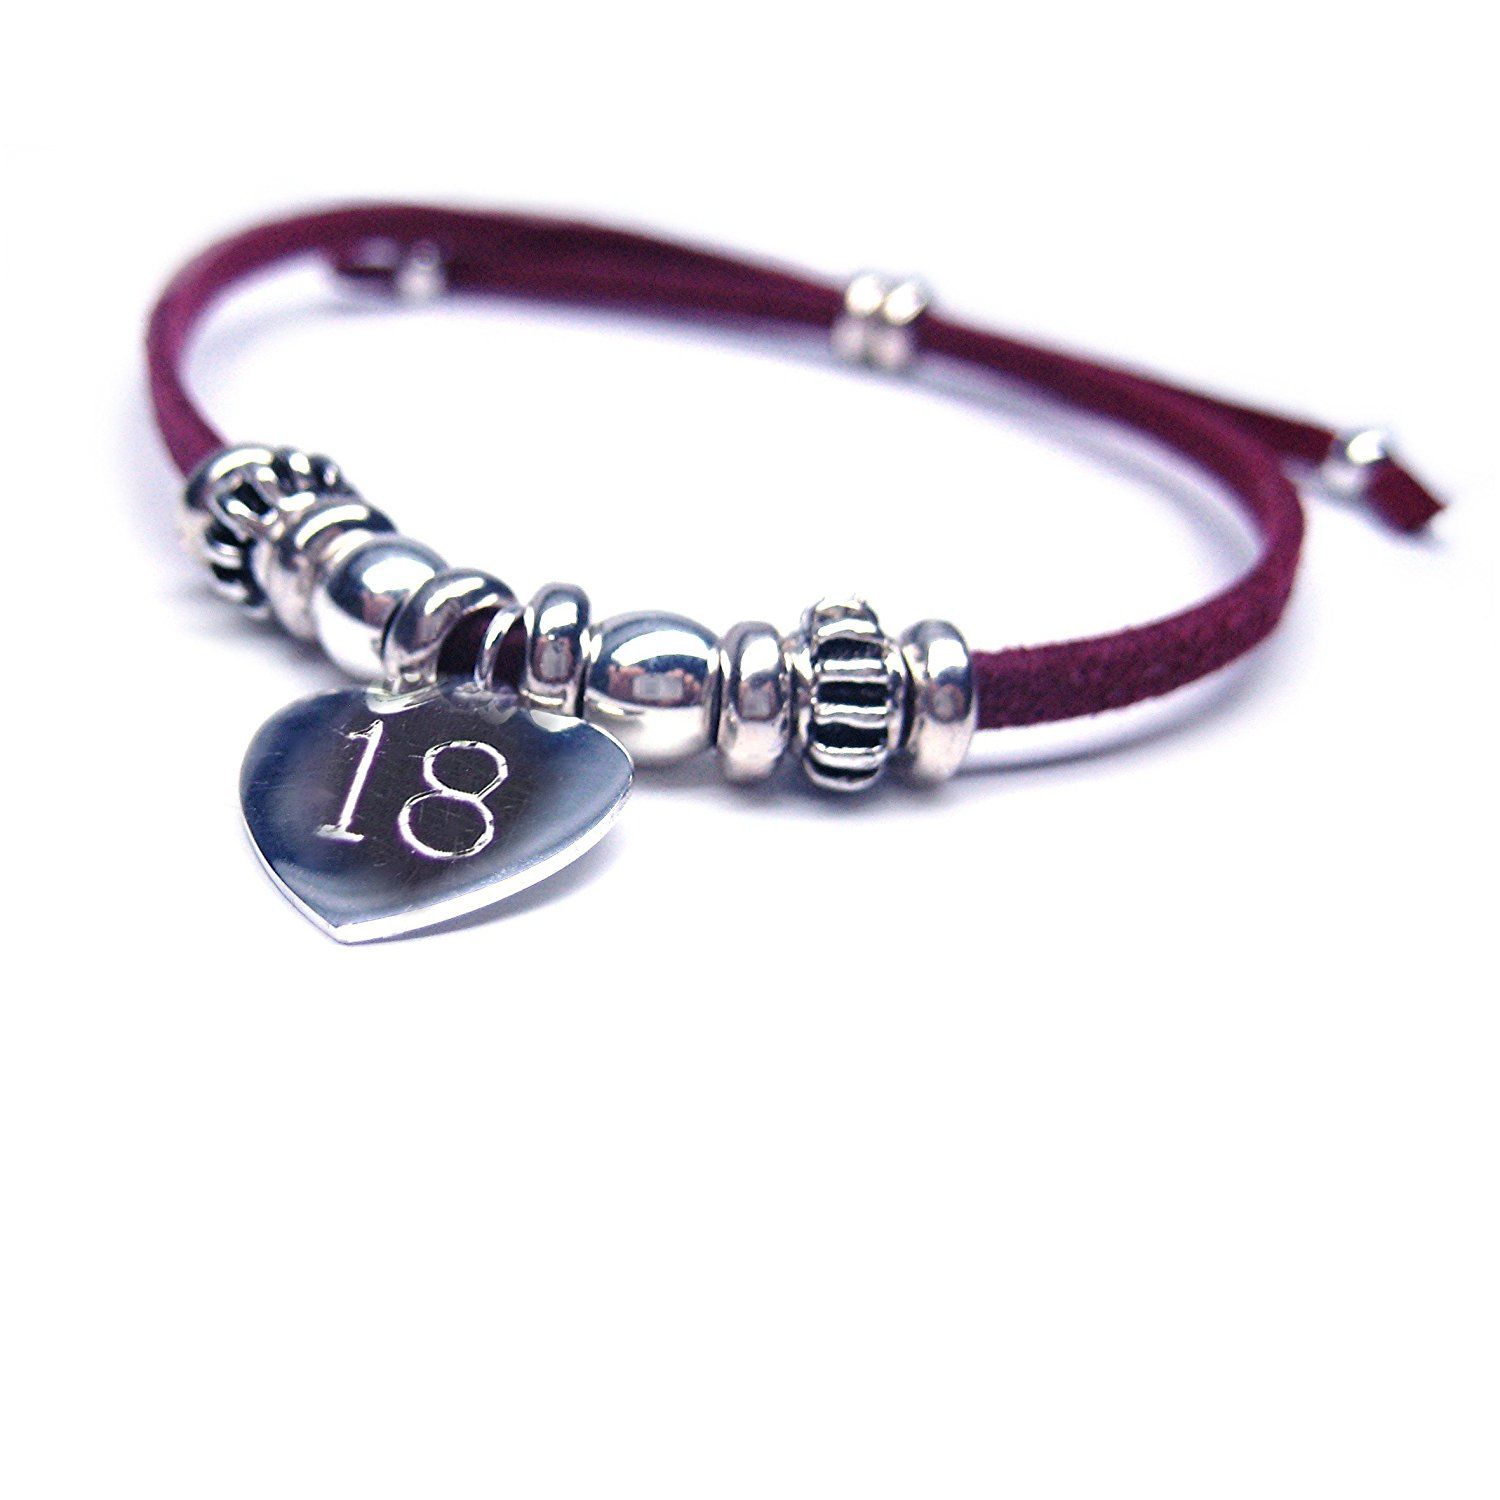 India 18th Birthday Engraved Bracelet Red Gift Present Girl